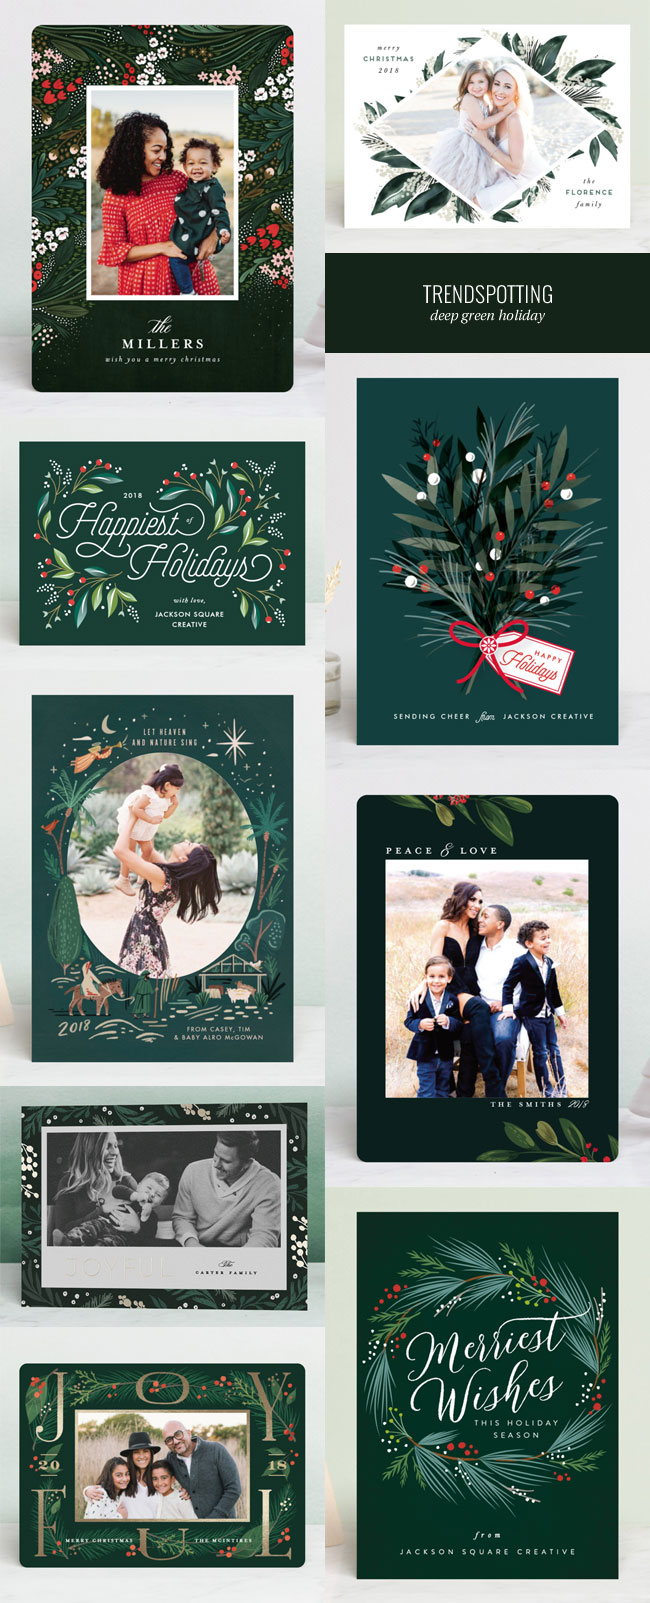 Trending : Deep Green Botanicals for Holiday / Holiday Card Design Ideas #holidaycards